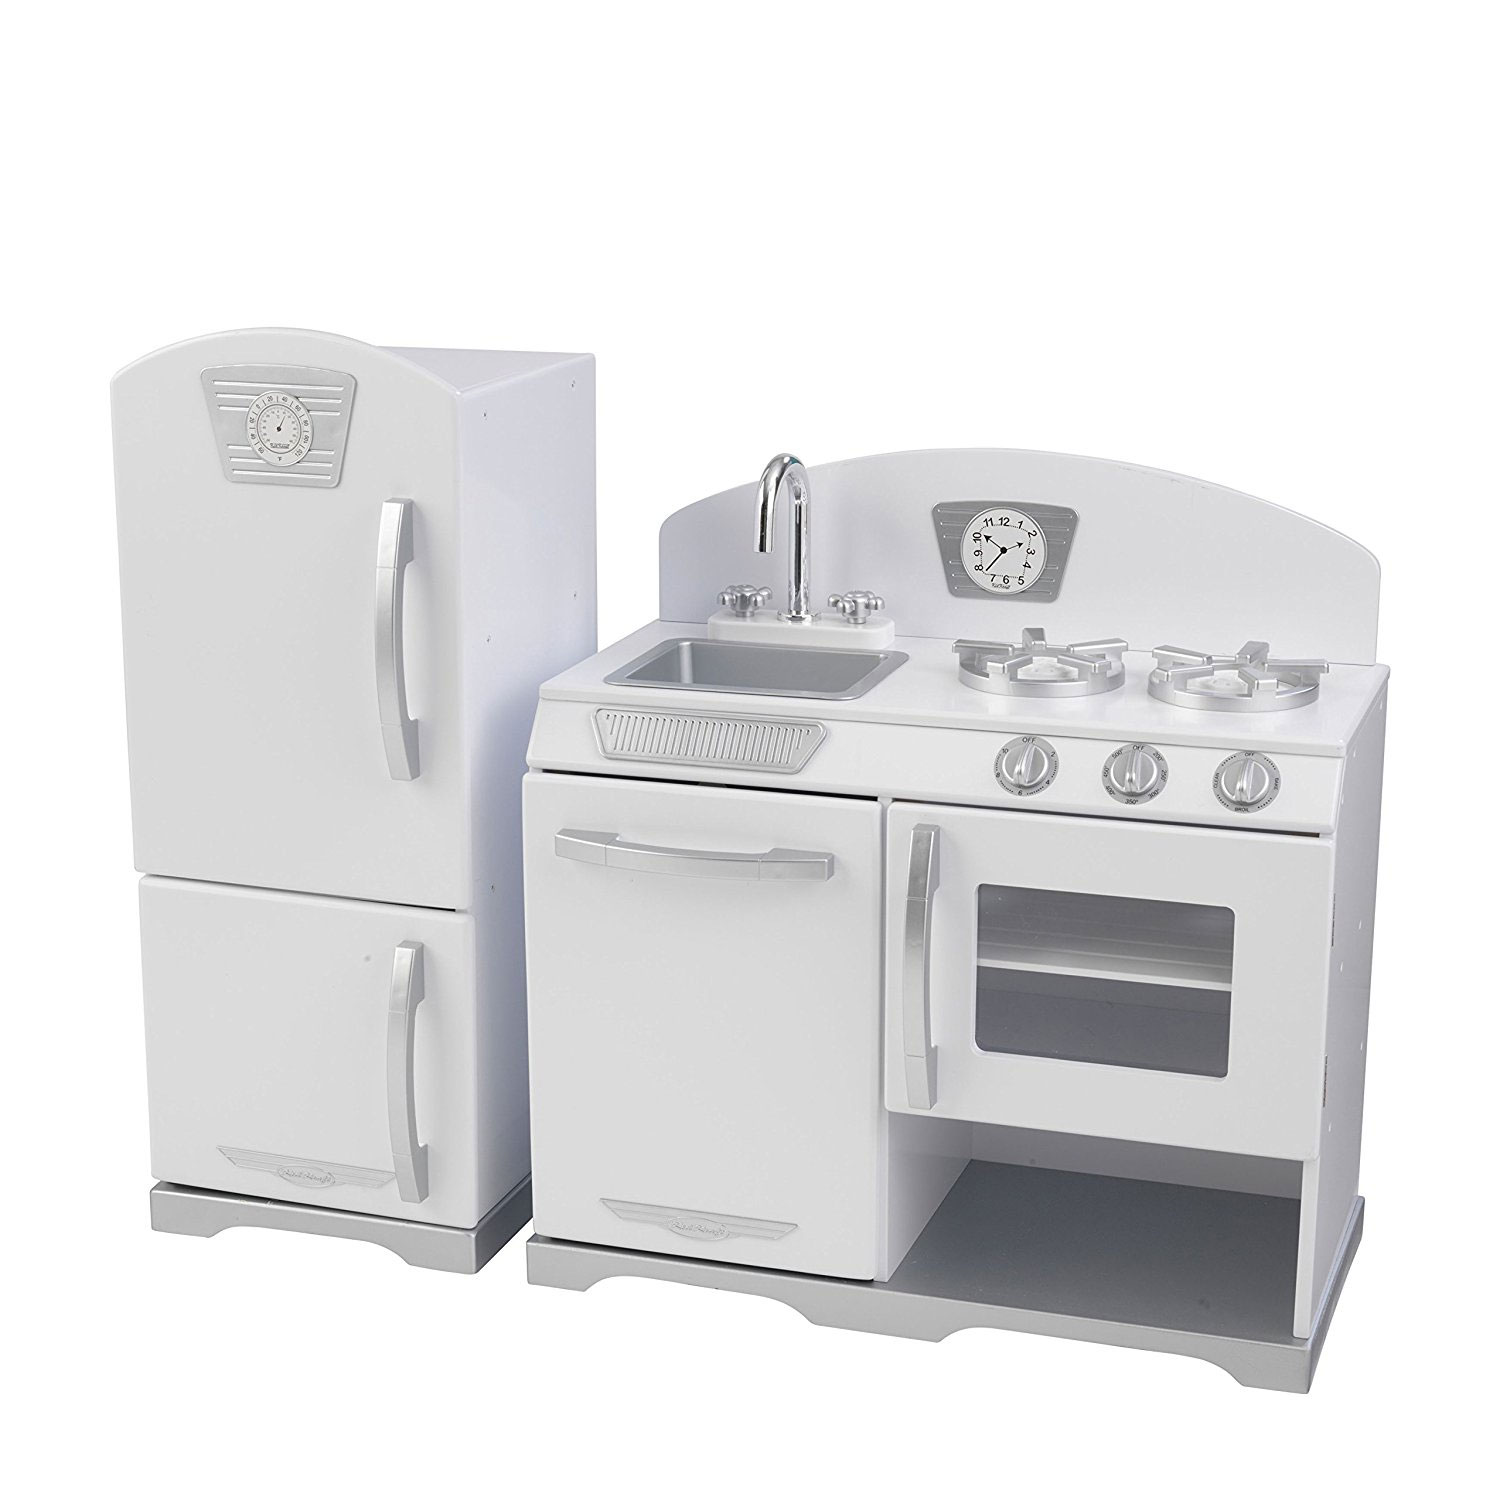 KidKraft 2 Piece Wooden Retro Kitchen Cooking Pretend Play Set Kids Toy,  White - Walmart.com